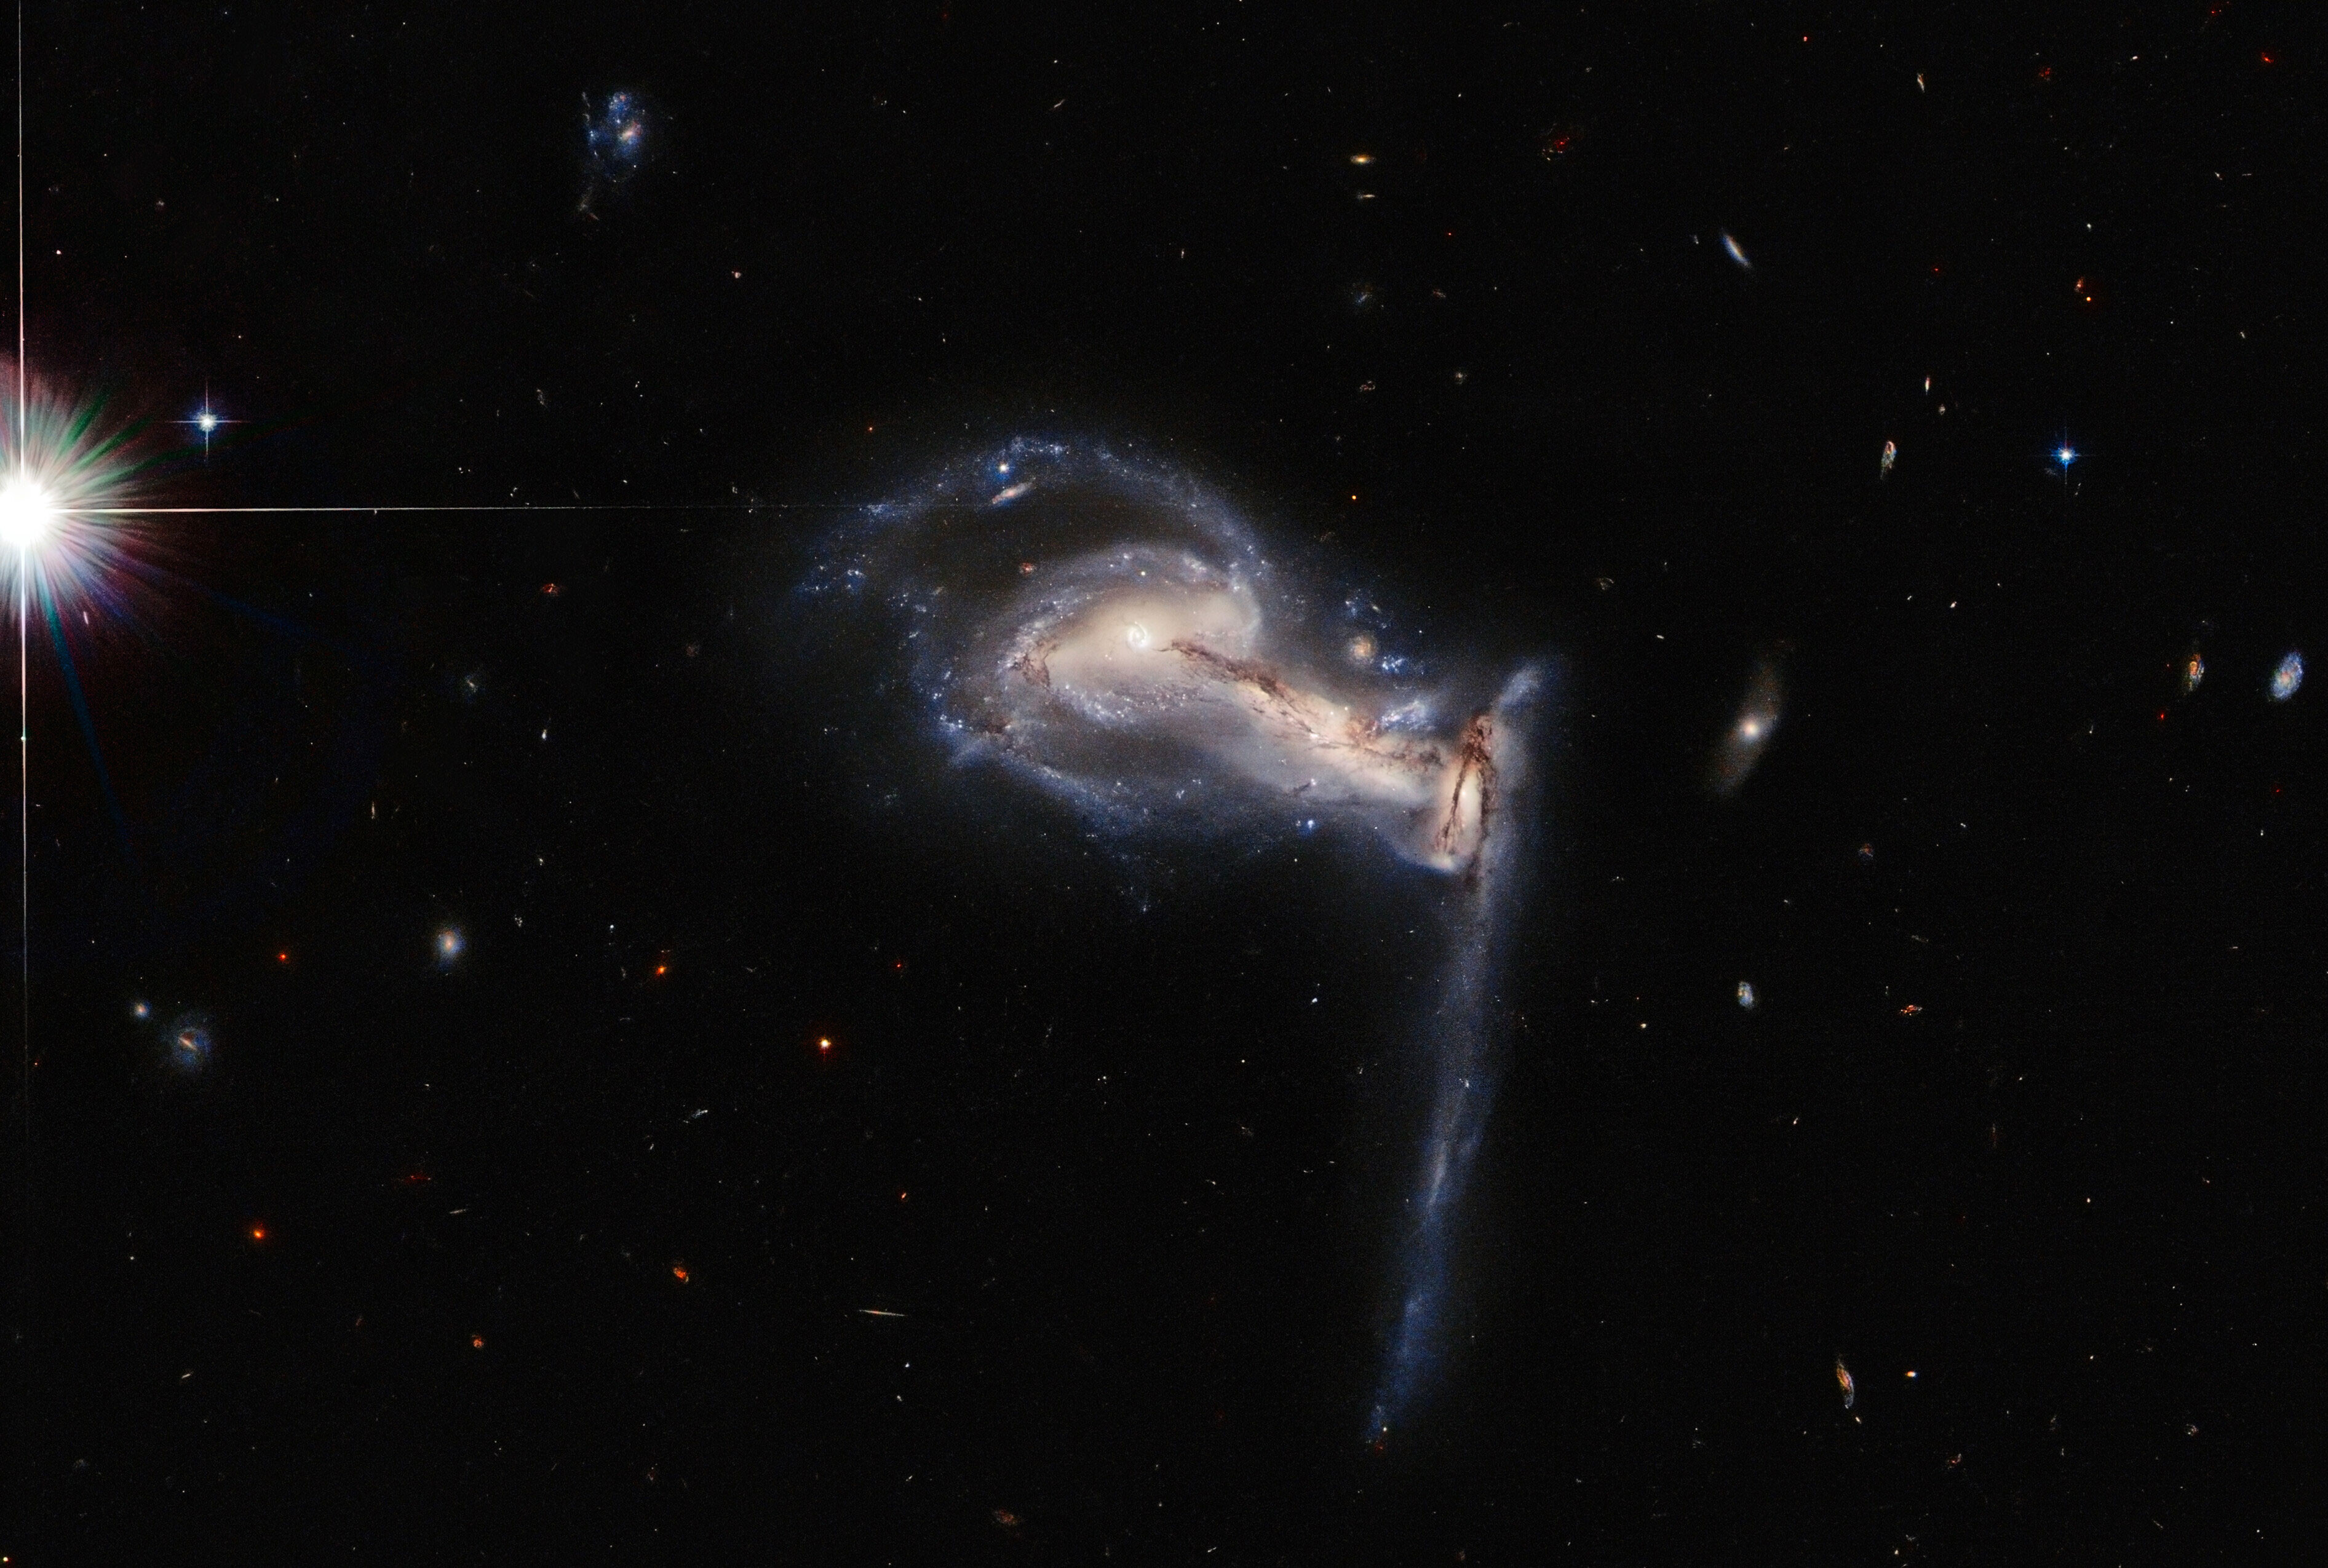 Hubble captures stunning image of squabbling galaxies